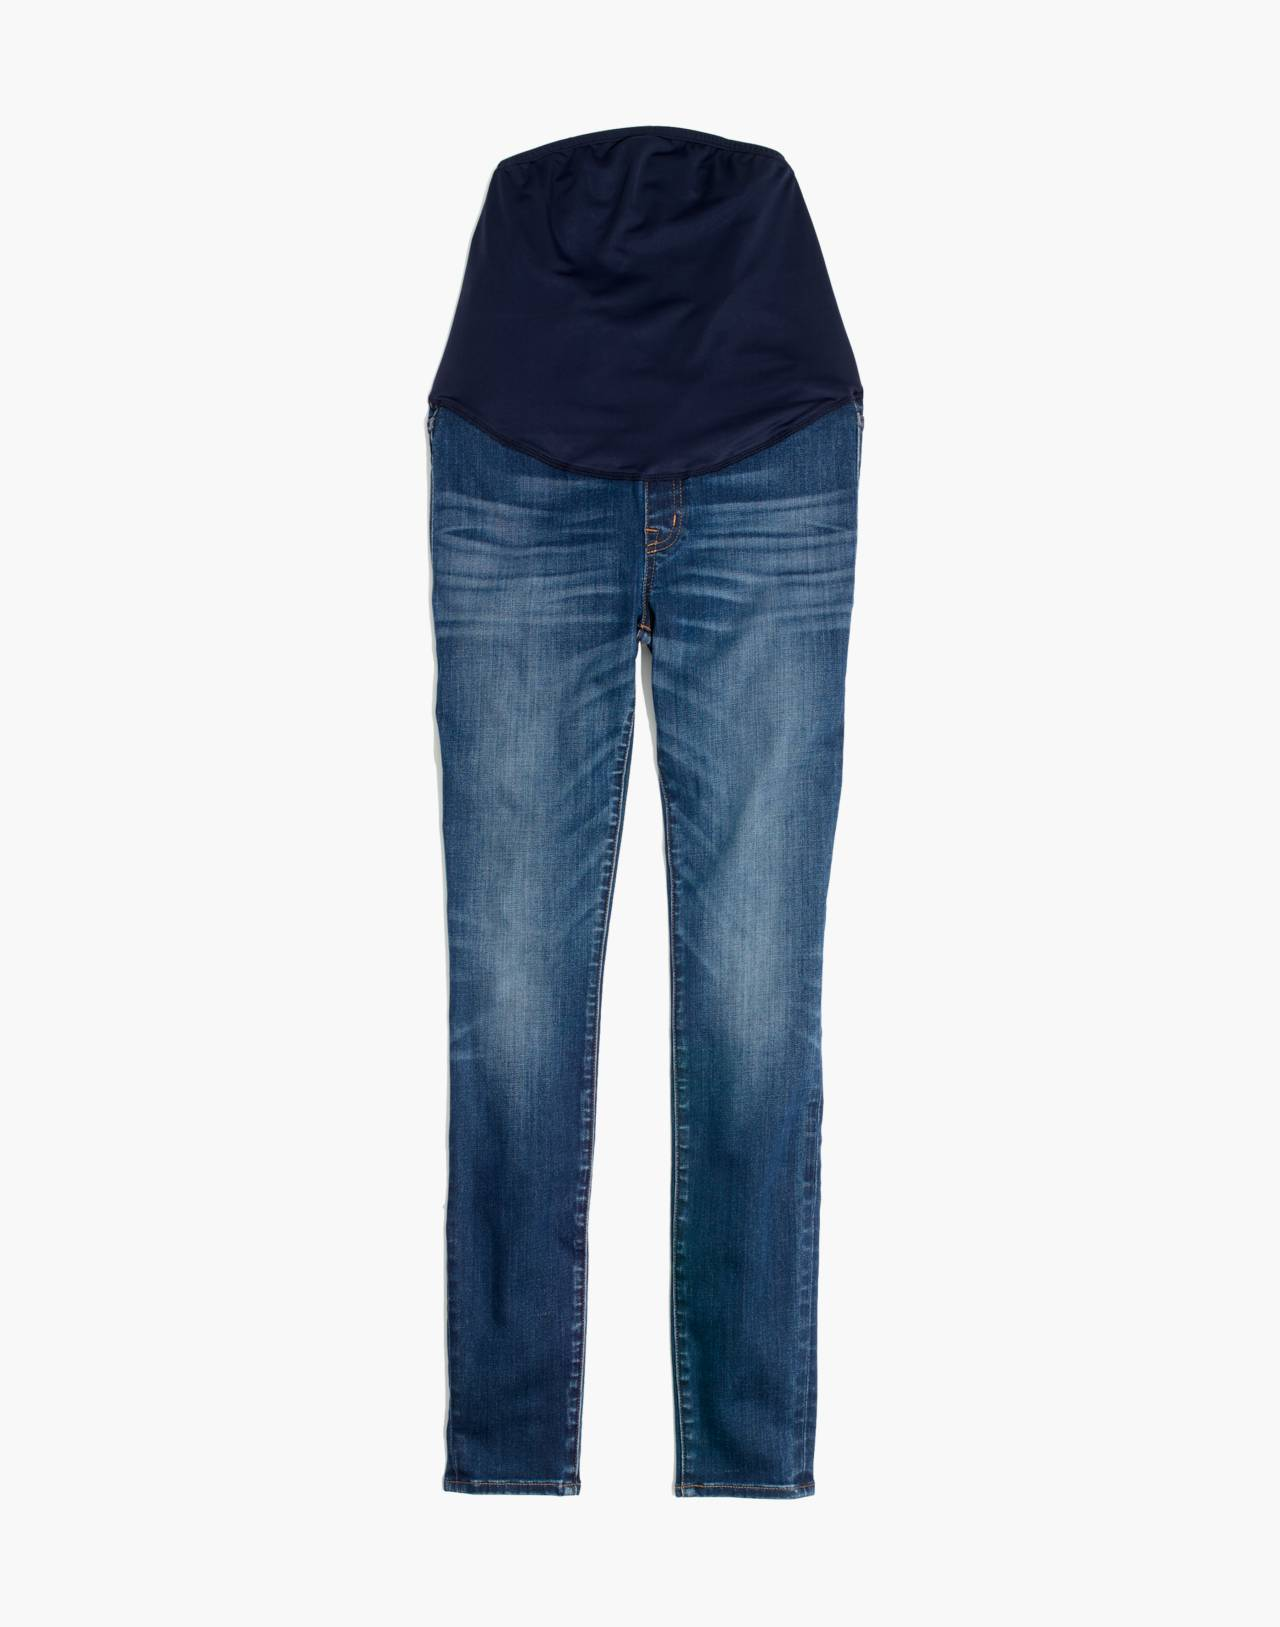 Maternity Over-the-Belly Skinny Jeans in Danny Wash: Tencel™ Edition in danny image 4